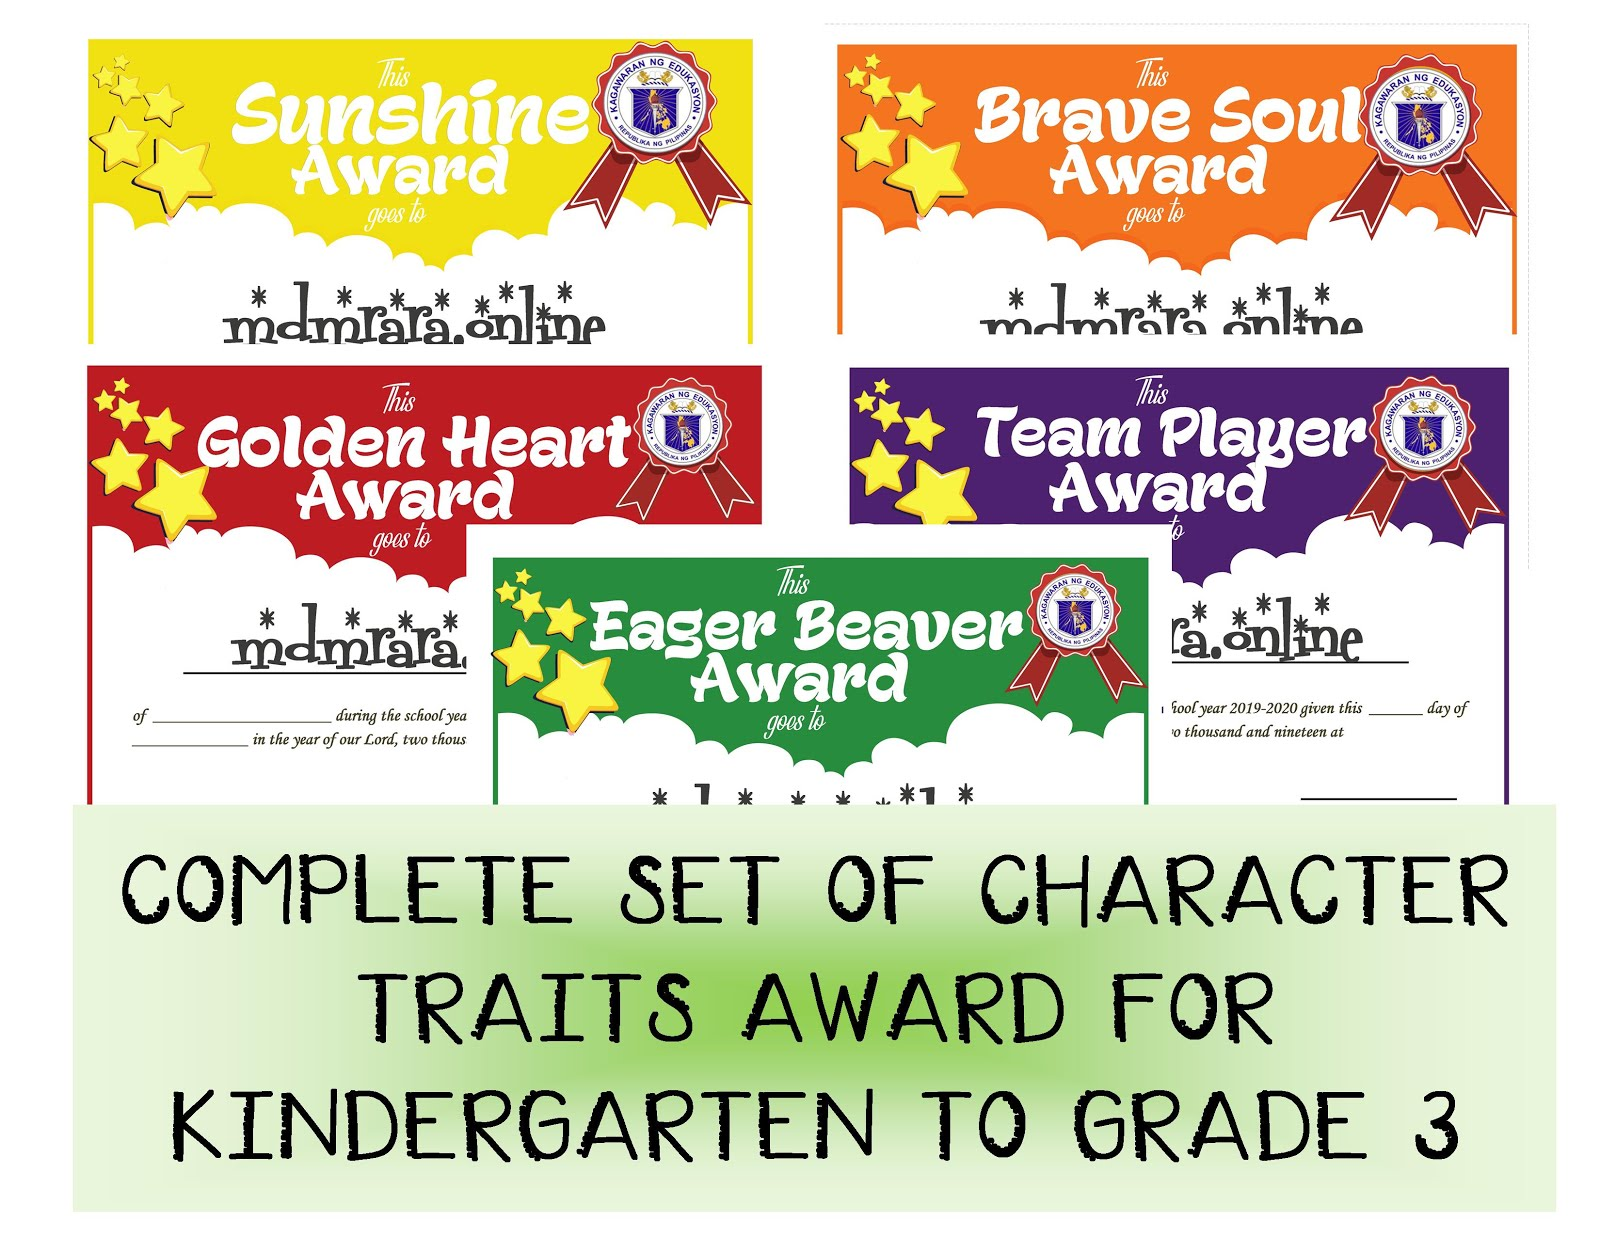 Complete Set Of Character Traits Award For Kindergarten To